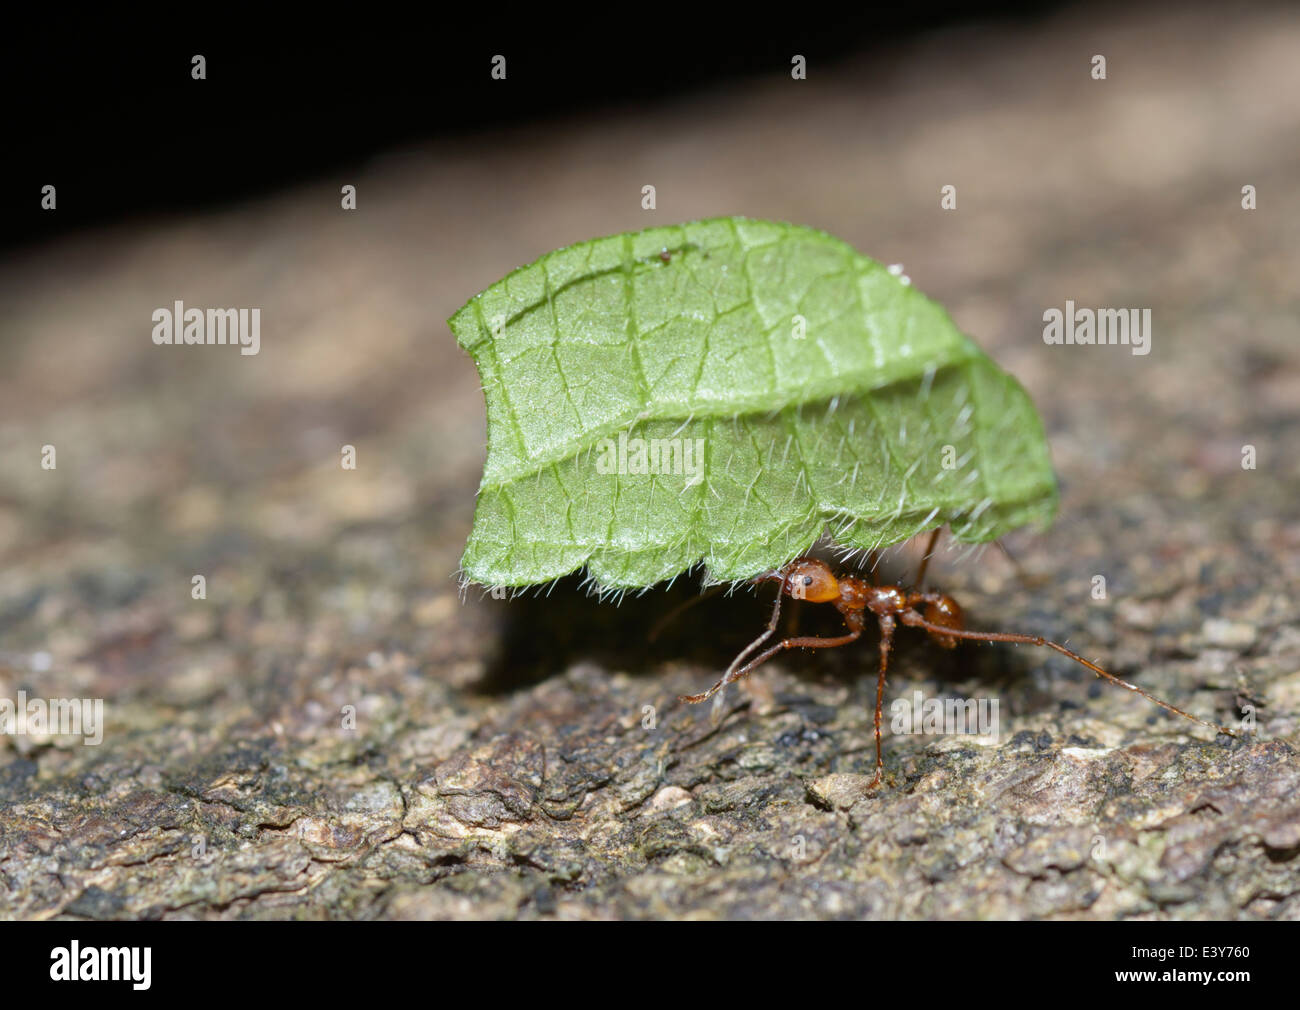 Leaf cutter ant, Atta sp. - Stock Image